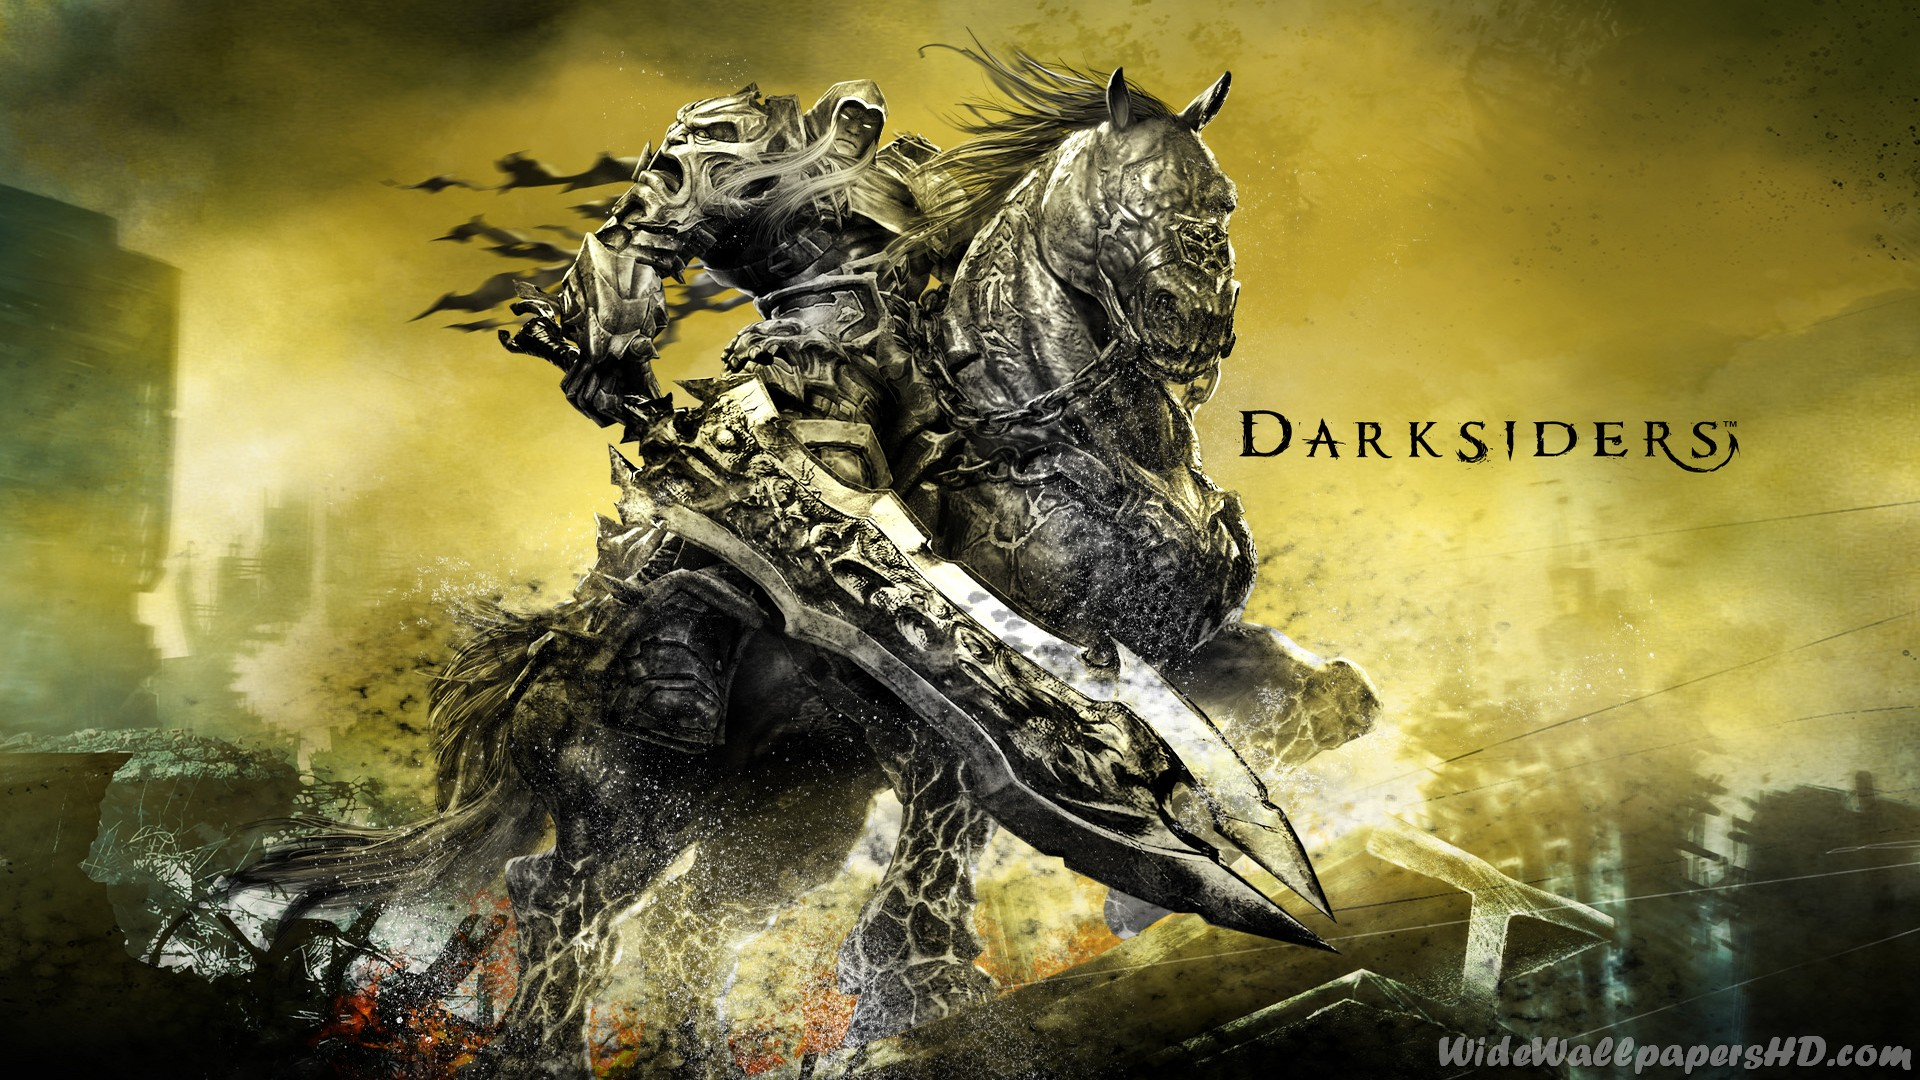 Four Horsemen Of The Apocalypse Wallpaper Darksiders 1920x1080